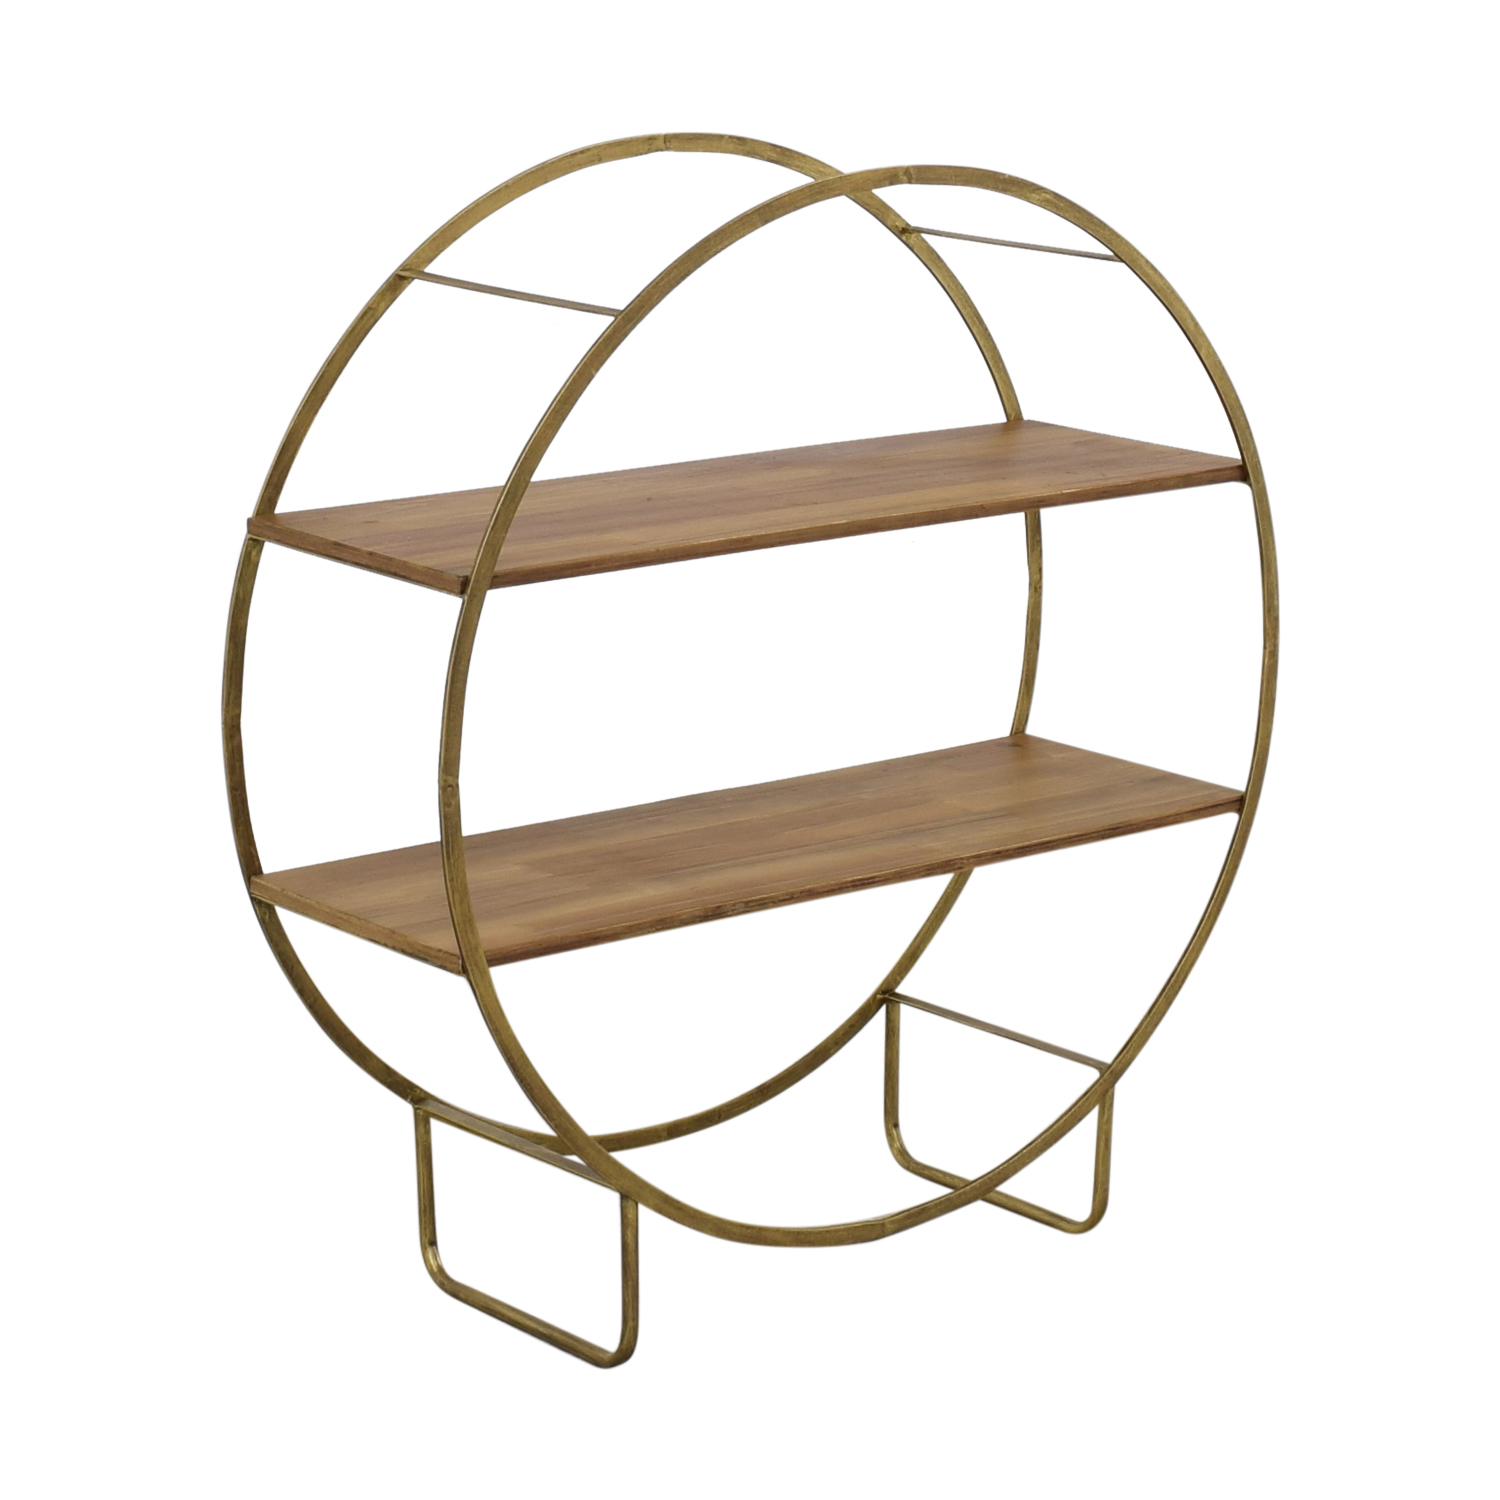 Urban Outfitters Urban Outfitters Brigid Circle Shelf discount